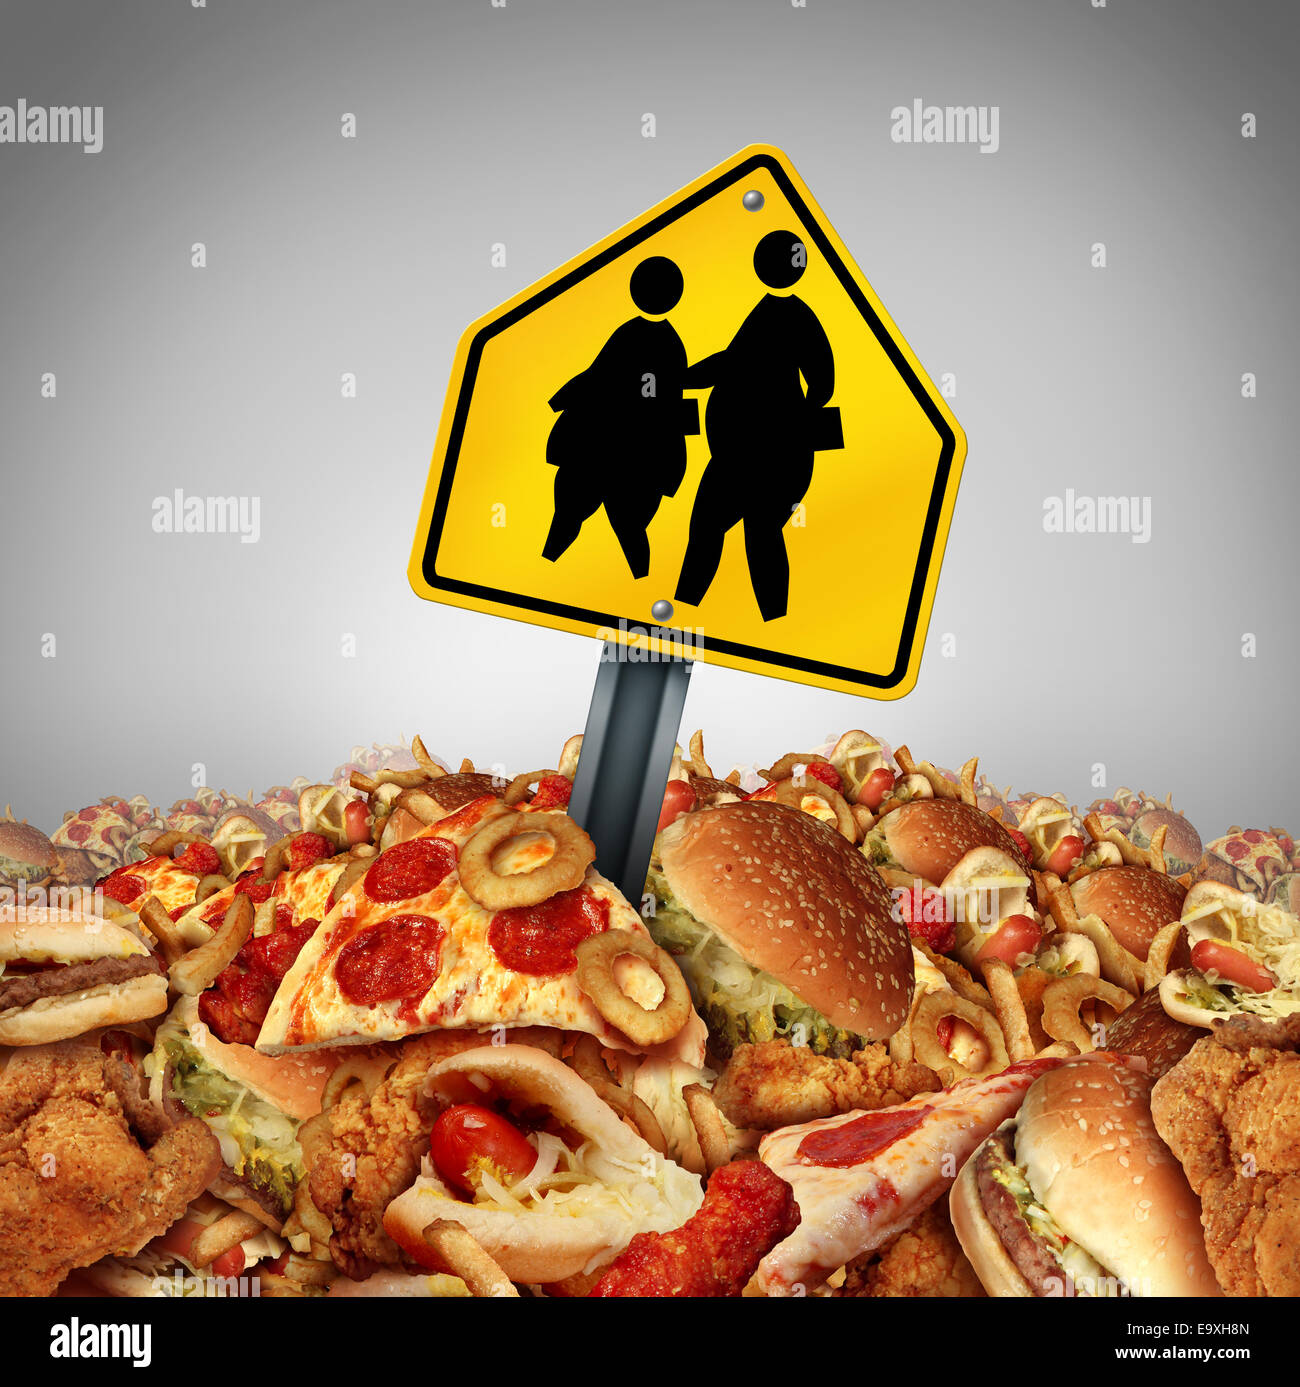 Children diet problems and obesity crisis in the school concept as a heap of unhealthy fast food with two overweight - Stock Image